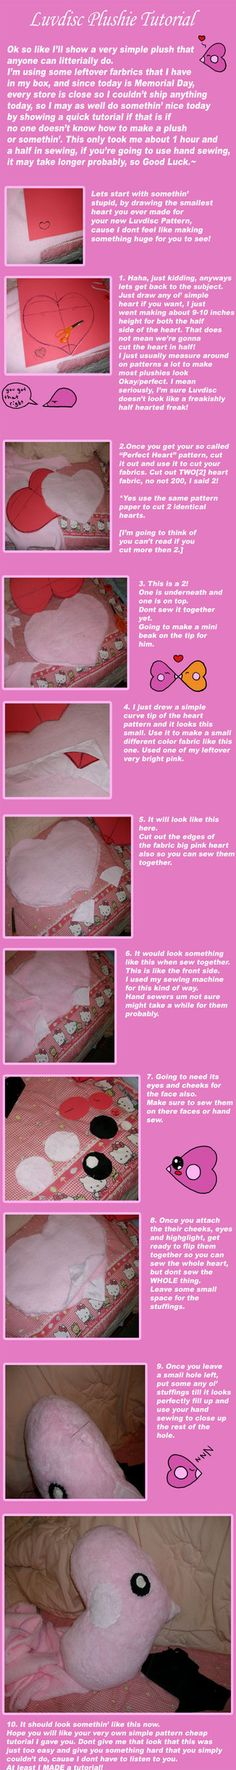 Luvdisc Plush Tutorial by saiyamewome on deviantART